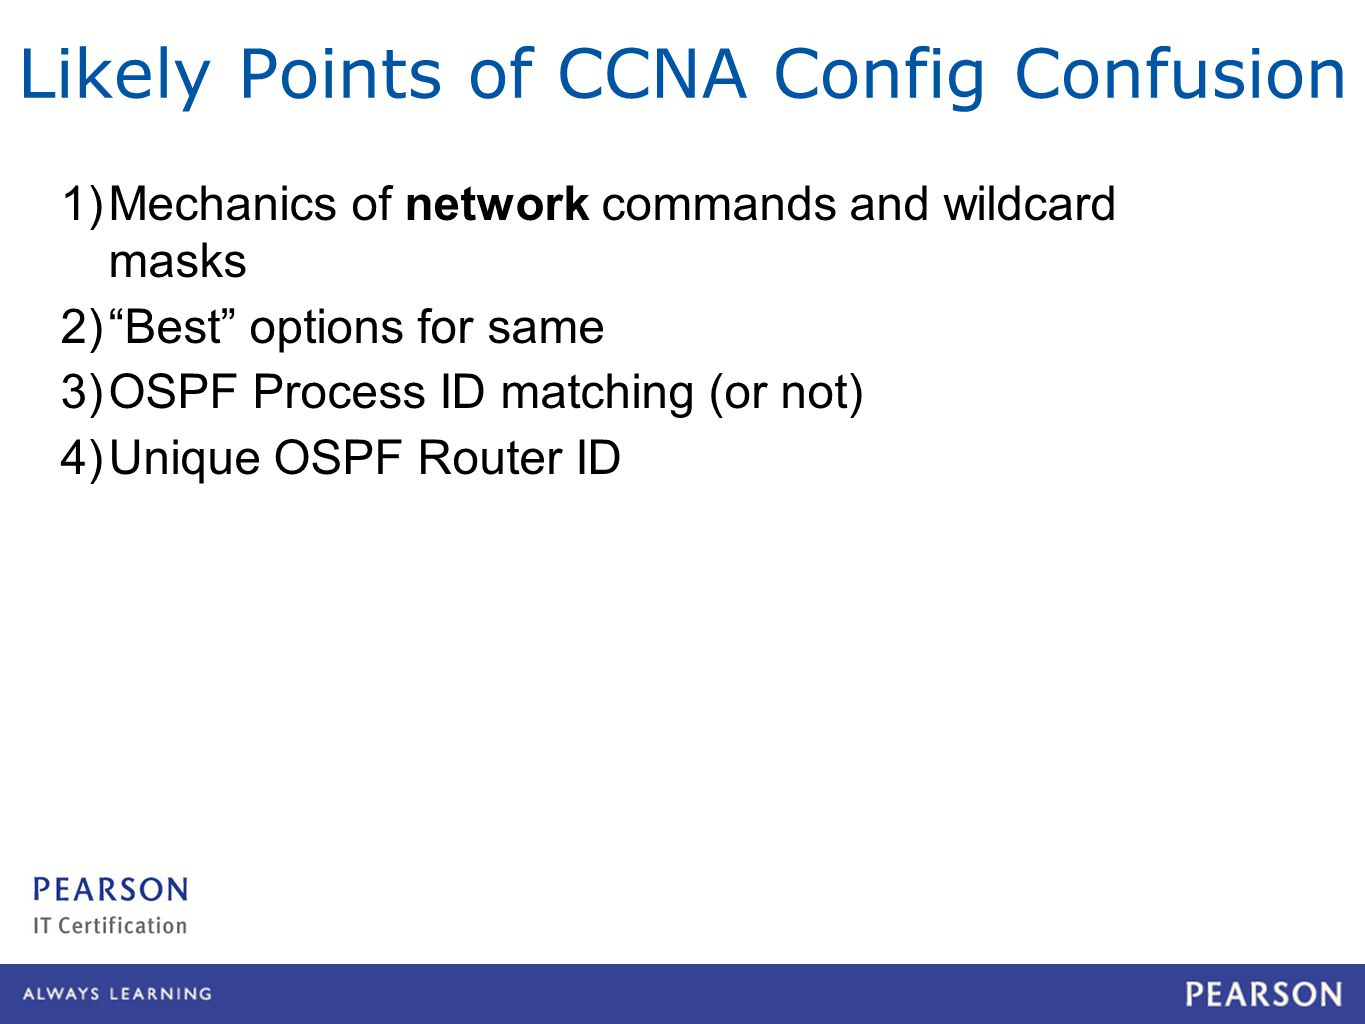 Likely Points of CCNA Config Confusion 1)Mechanics of network commands and wildcard masks 2) Best options for same 3)OSPF Process ID matching (or not) 4)Unique OSPF Router ID